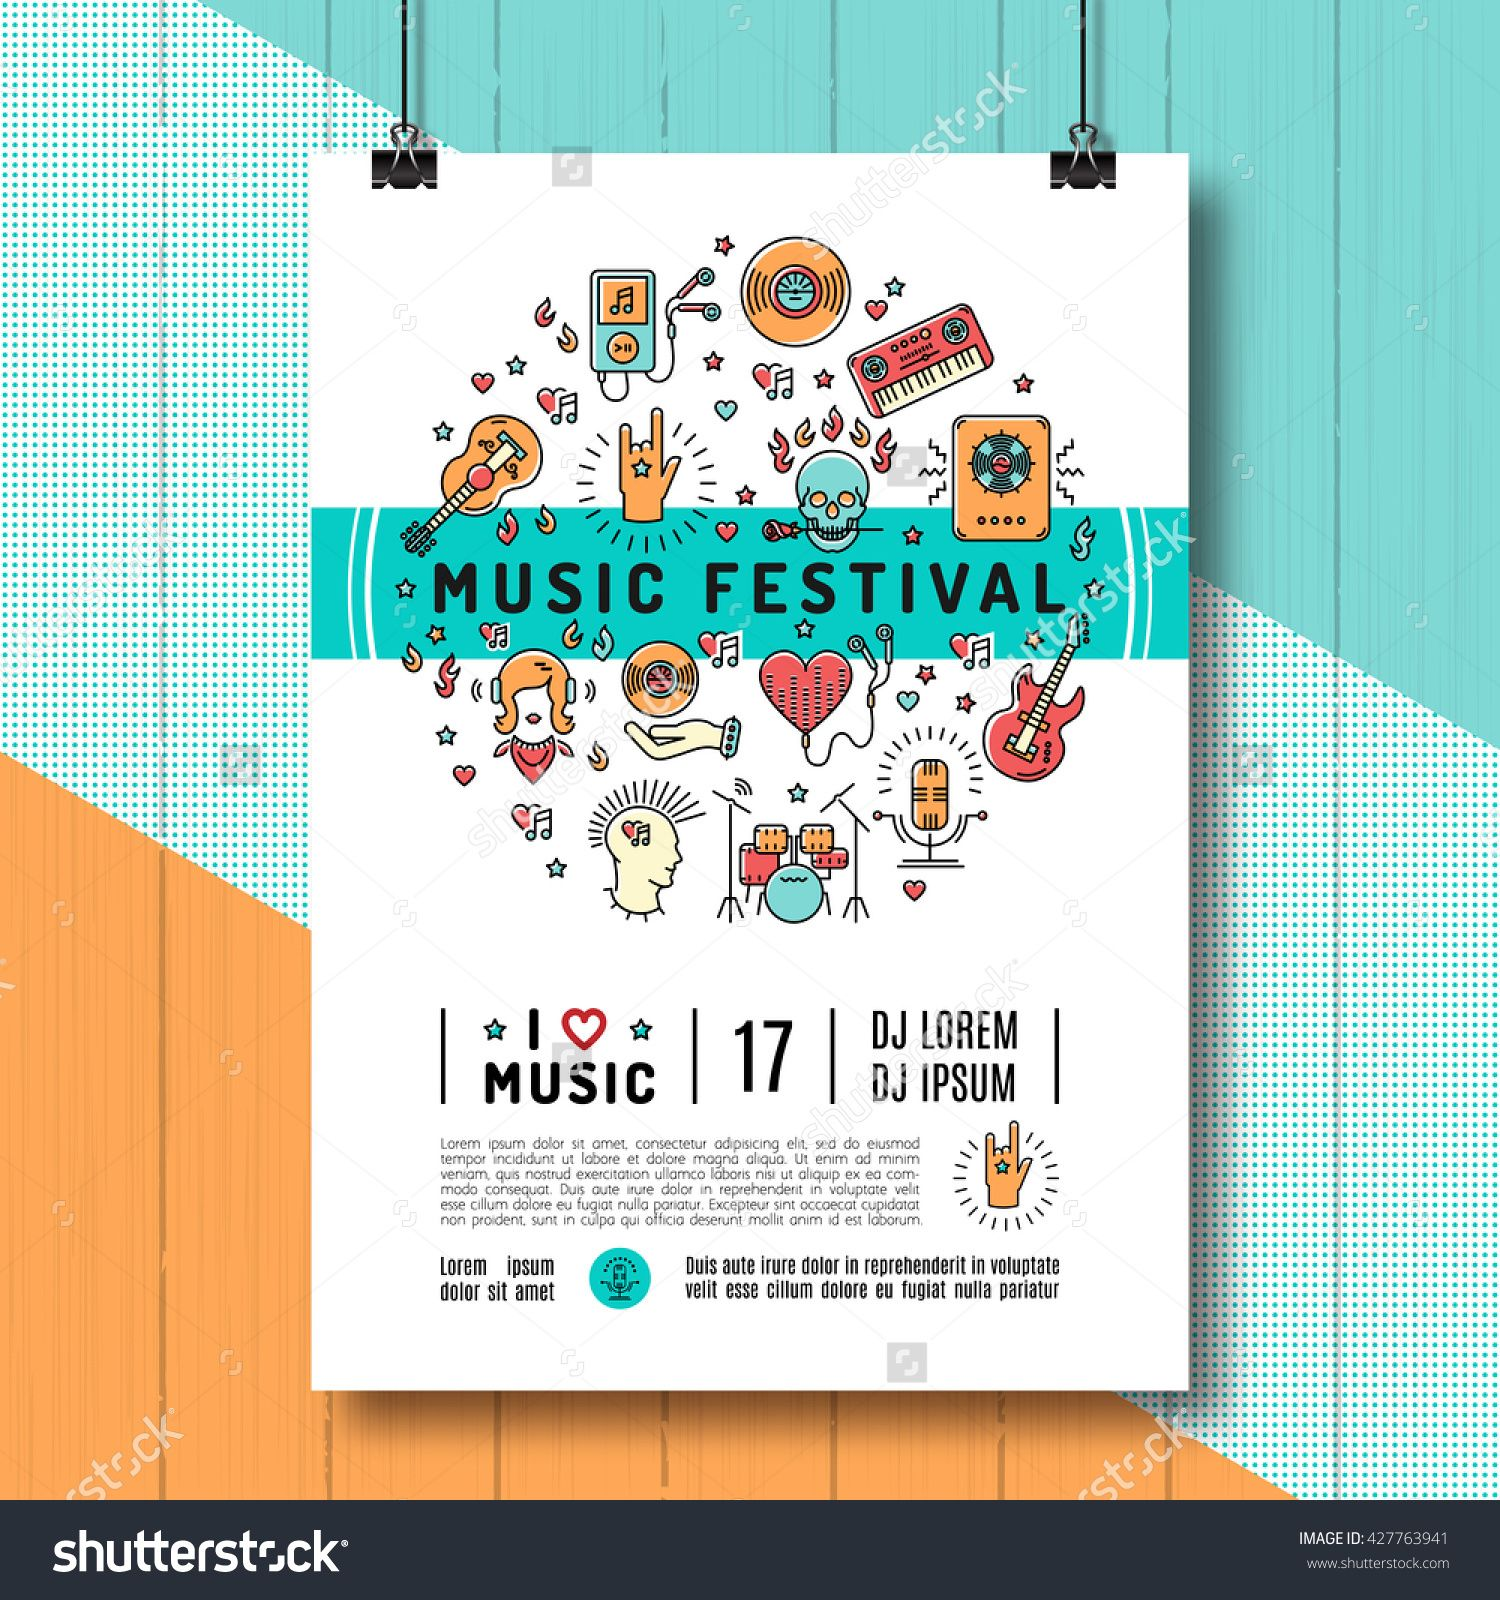 Music Festival Poster Template A4 Size Music Infographics Trendy Icons Line Art Style Rock Music Poster Design Concert Poster Design Music Festival Poster